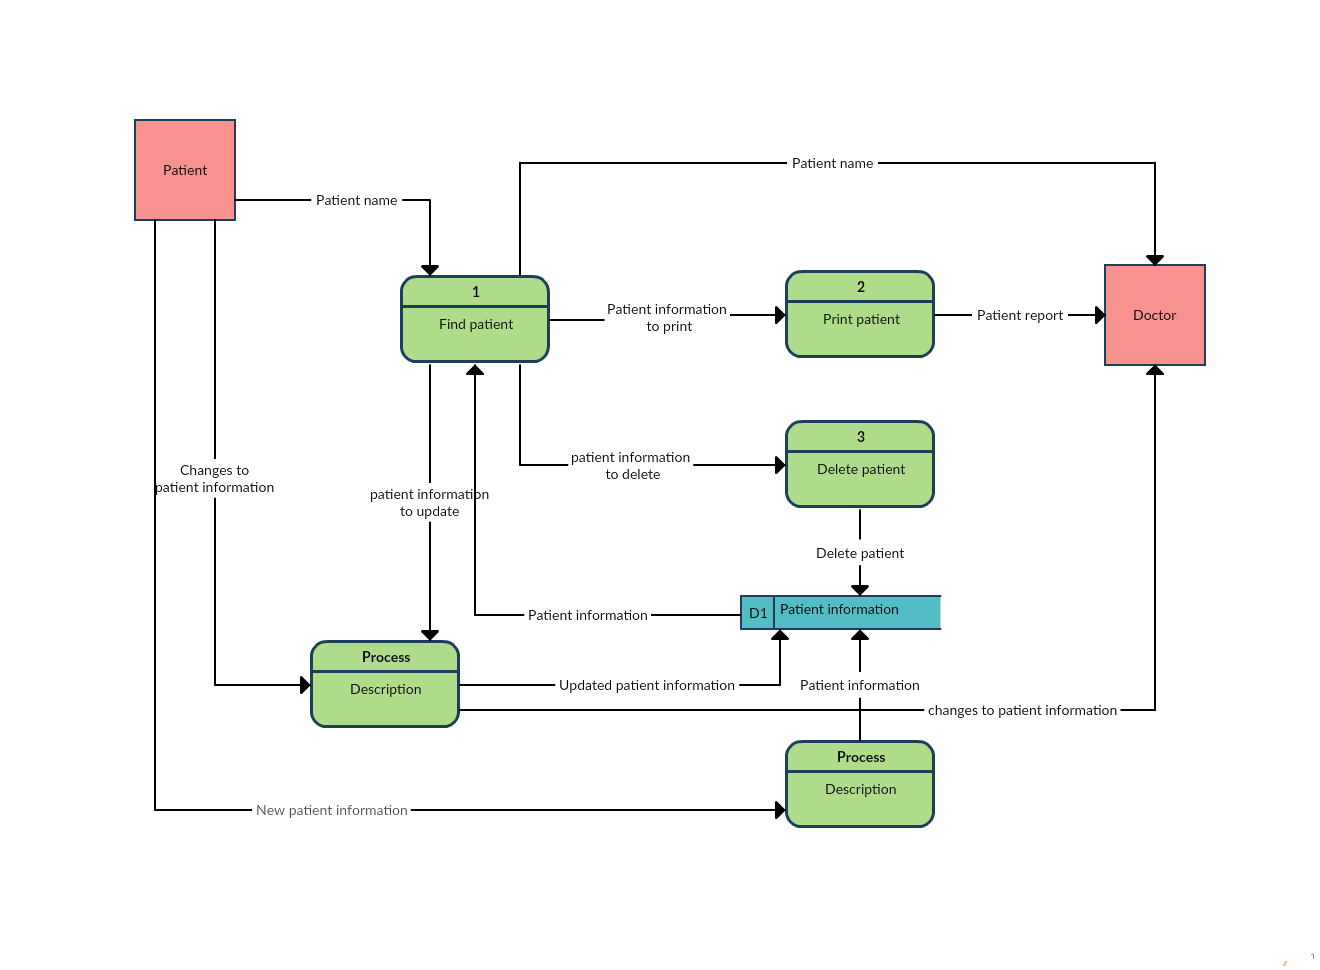 Data flow diagram templates to map data flows creately blog data flow diagram template of a patient information system ccuart Choice Image